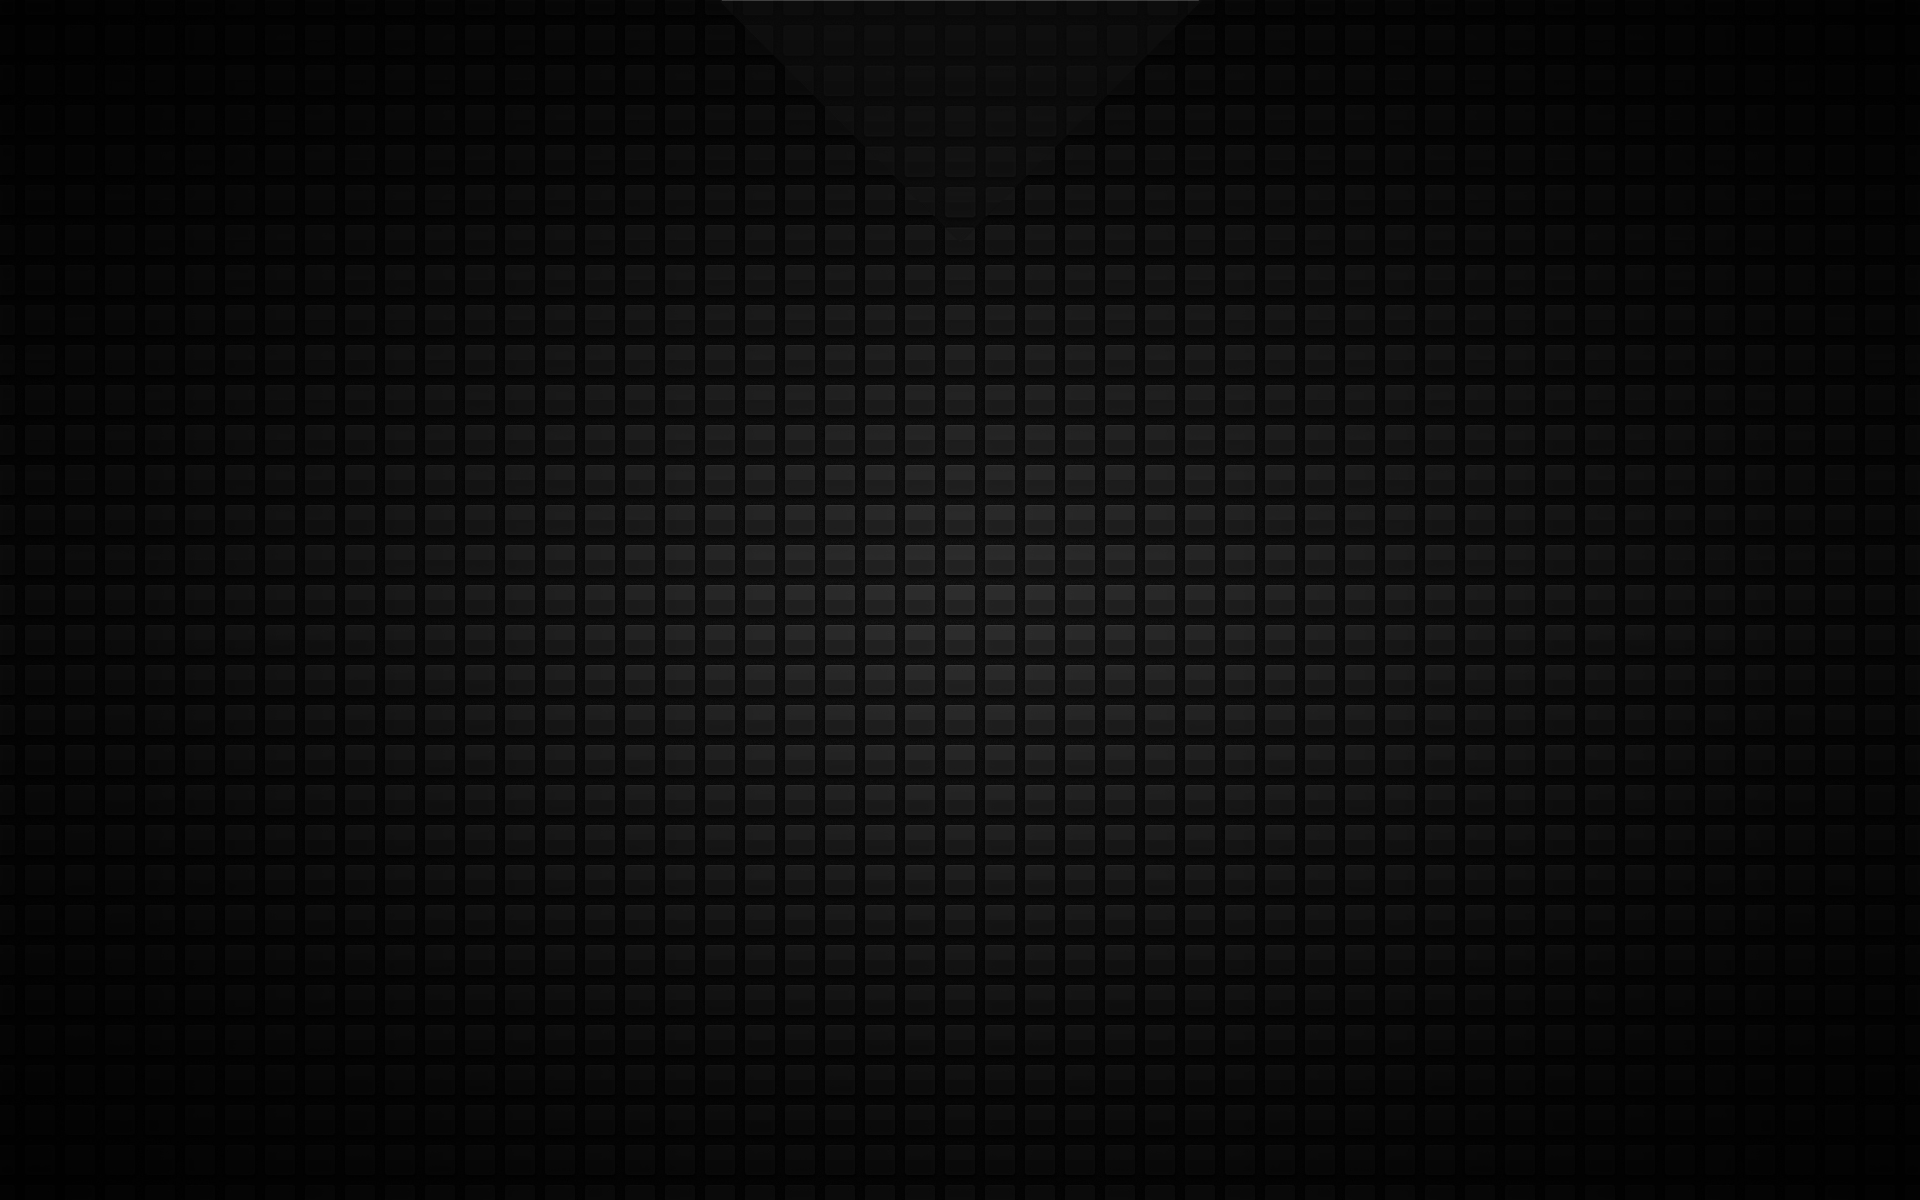 black wallpaper free downloads - photo #1